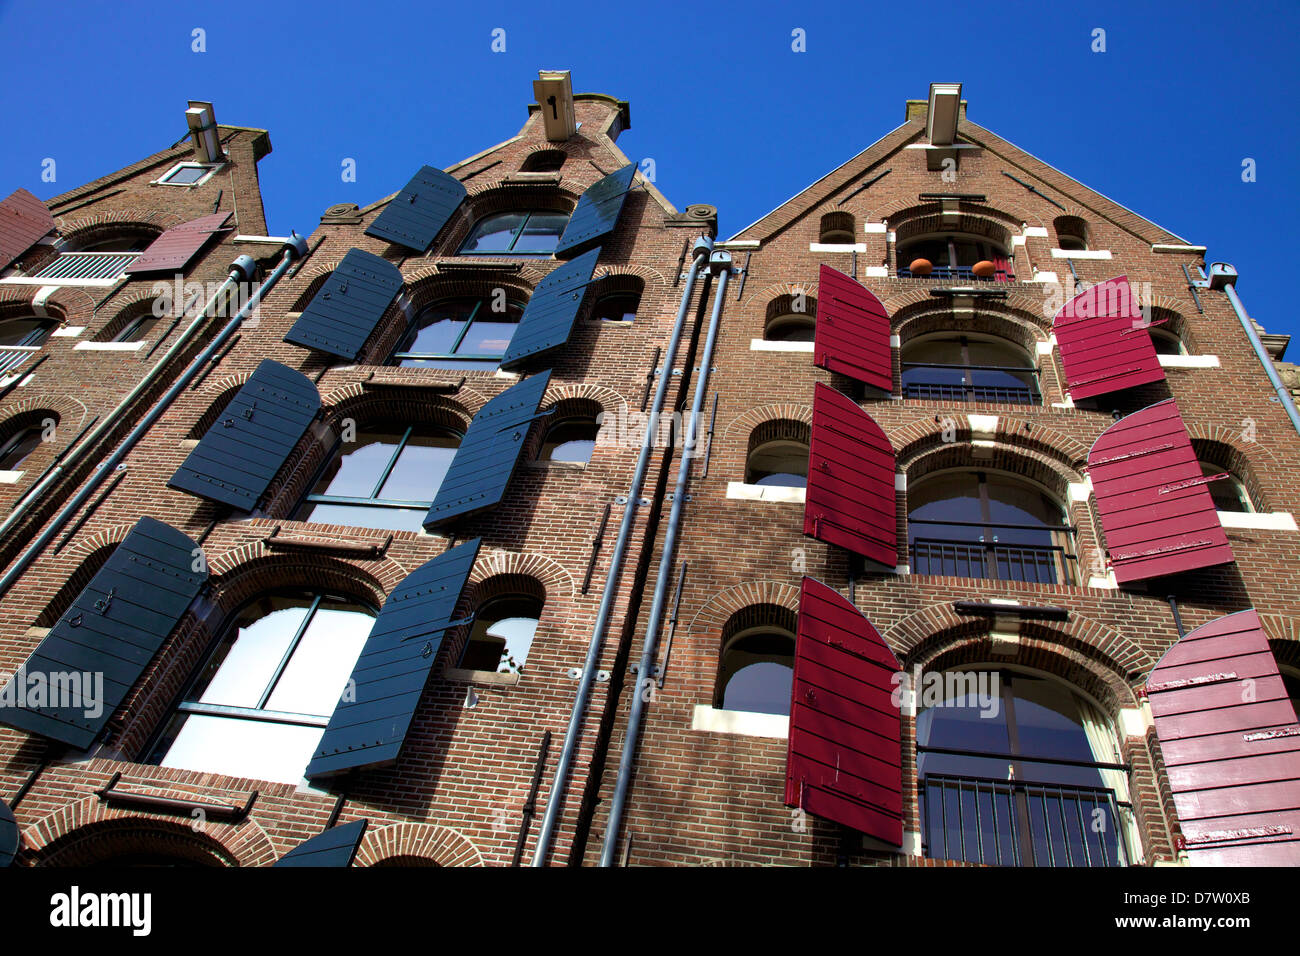 Converted canal warehouses, Amsterdam, Netherlands - Stock Image